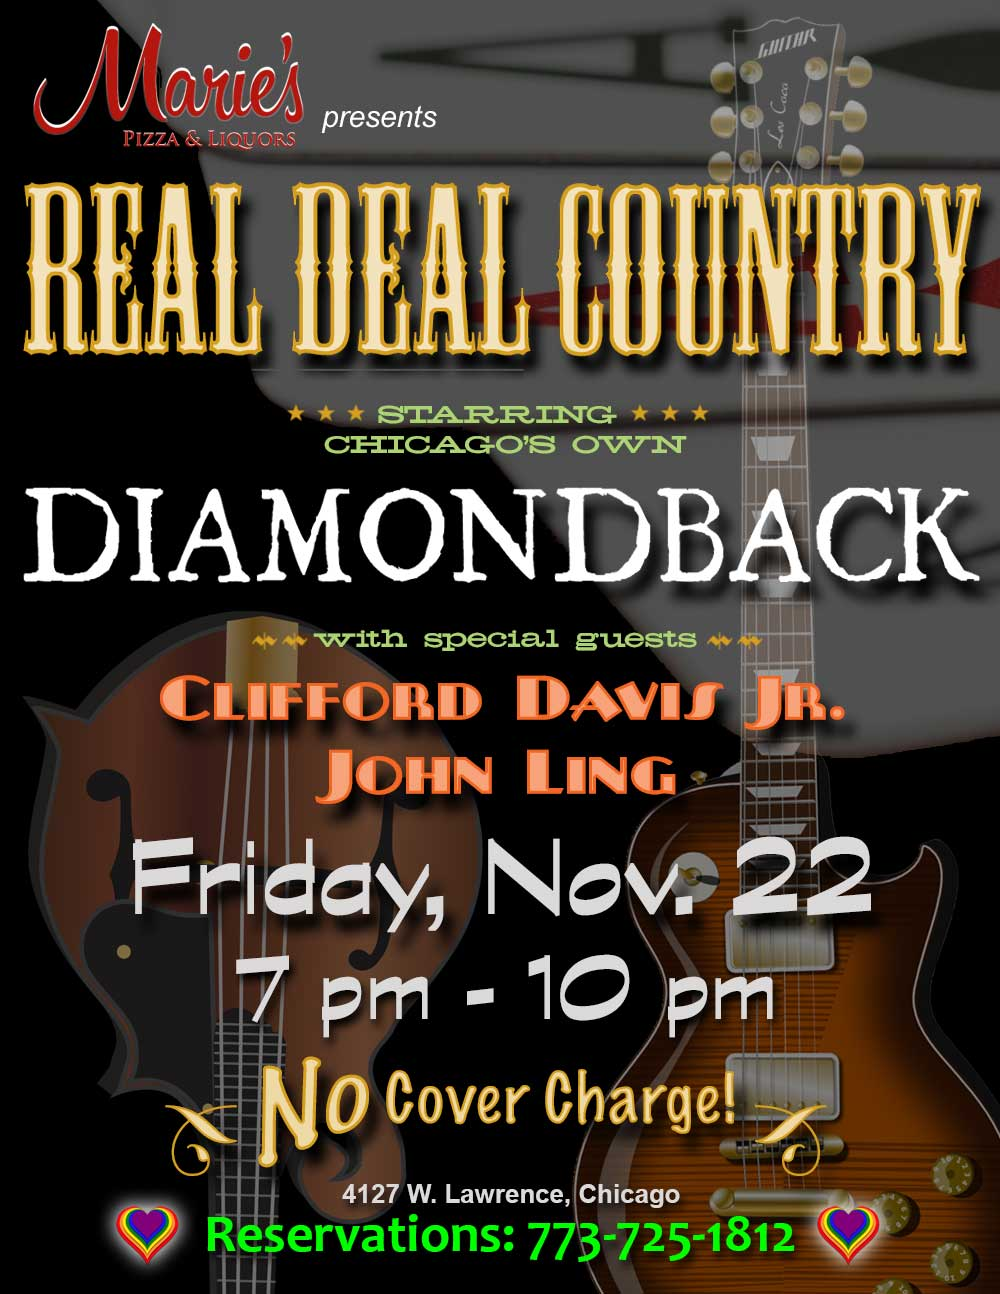 Marie's Pizza & Liquors presents Real Deal Country featuring Diamondback with special guests Clifford Davis Jr. and John Ling